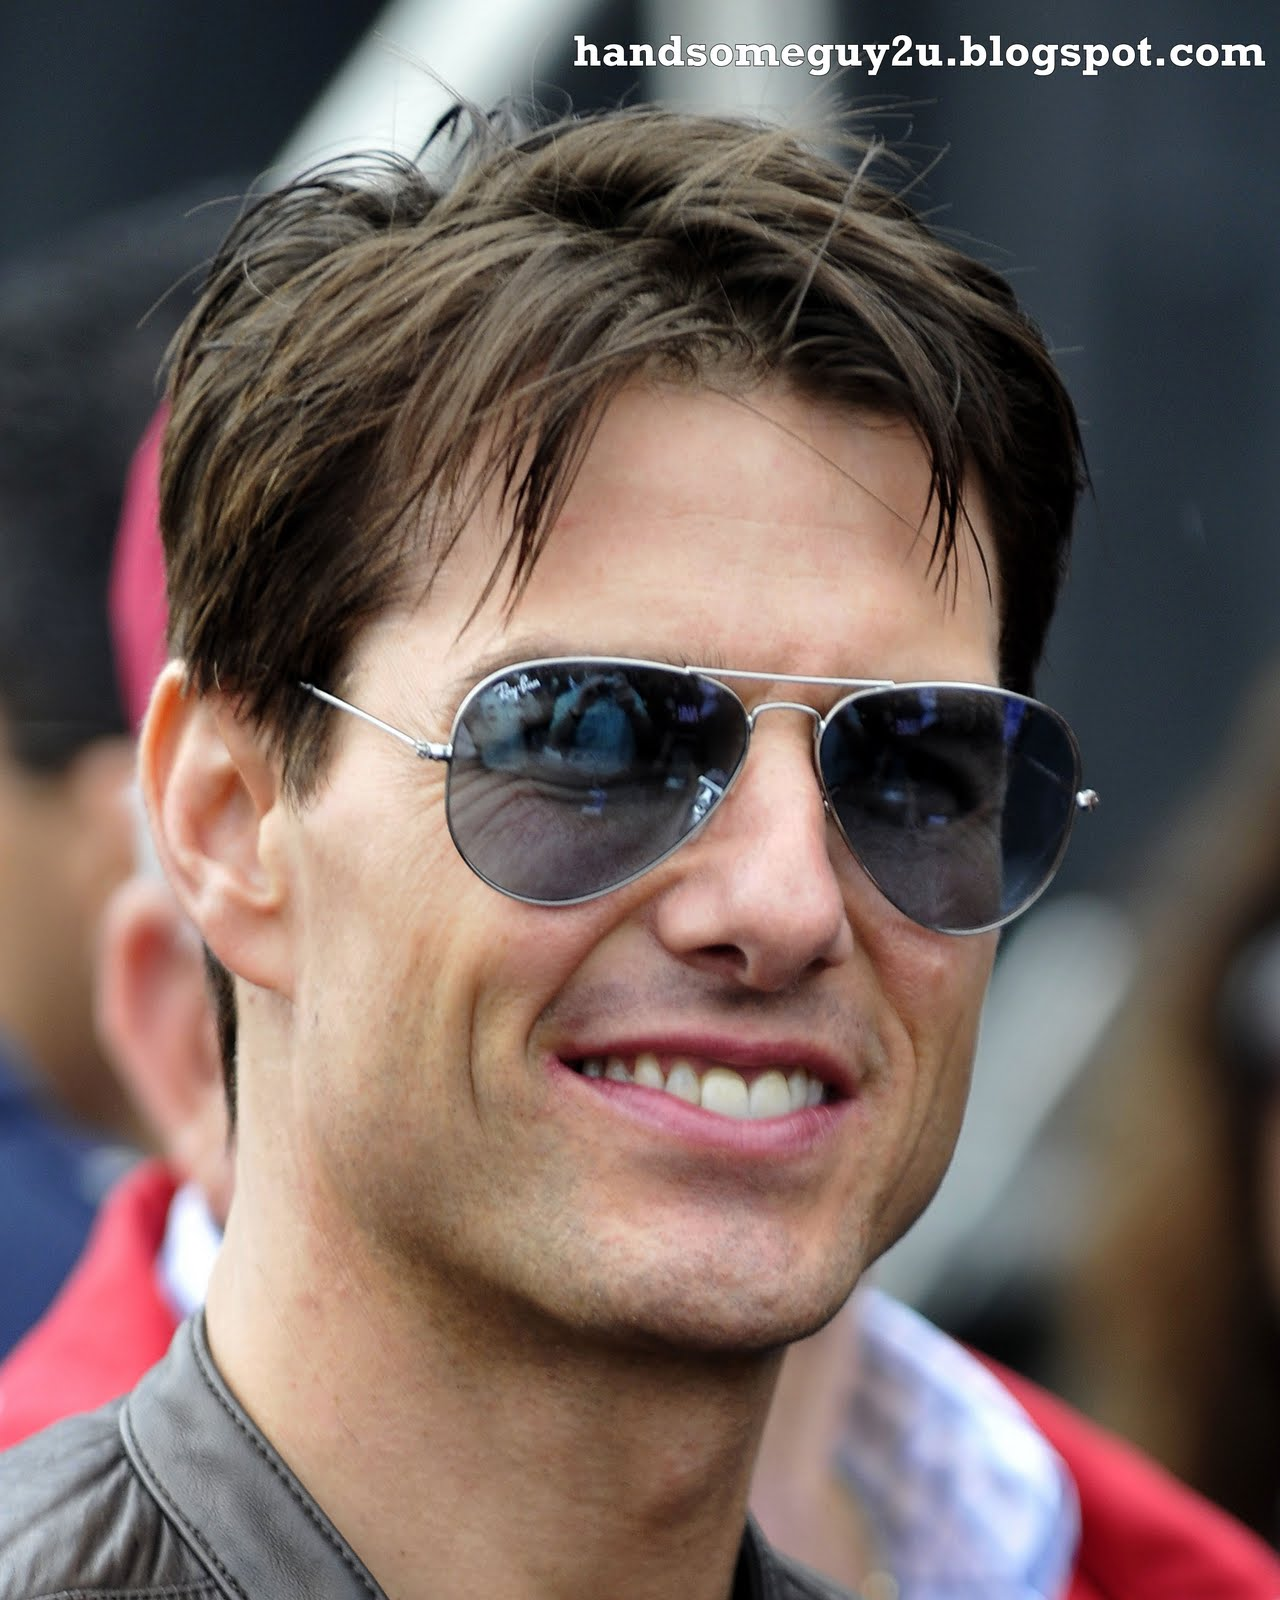 Tom Cruise ~ Handsome Guy 2 You (Photos and WallPaper)